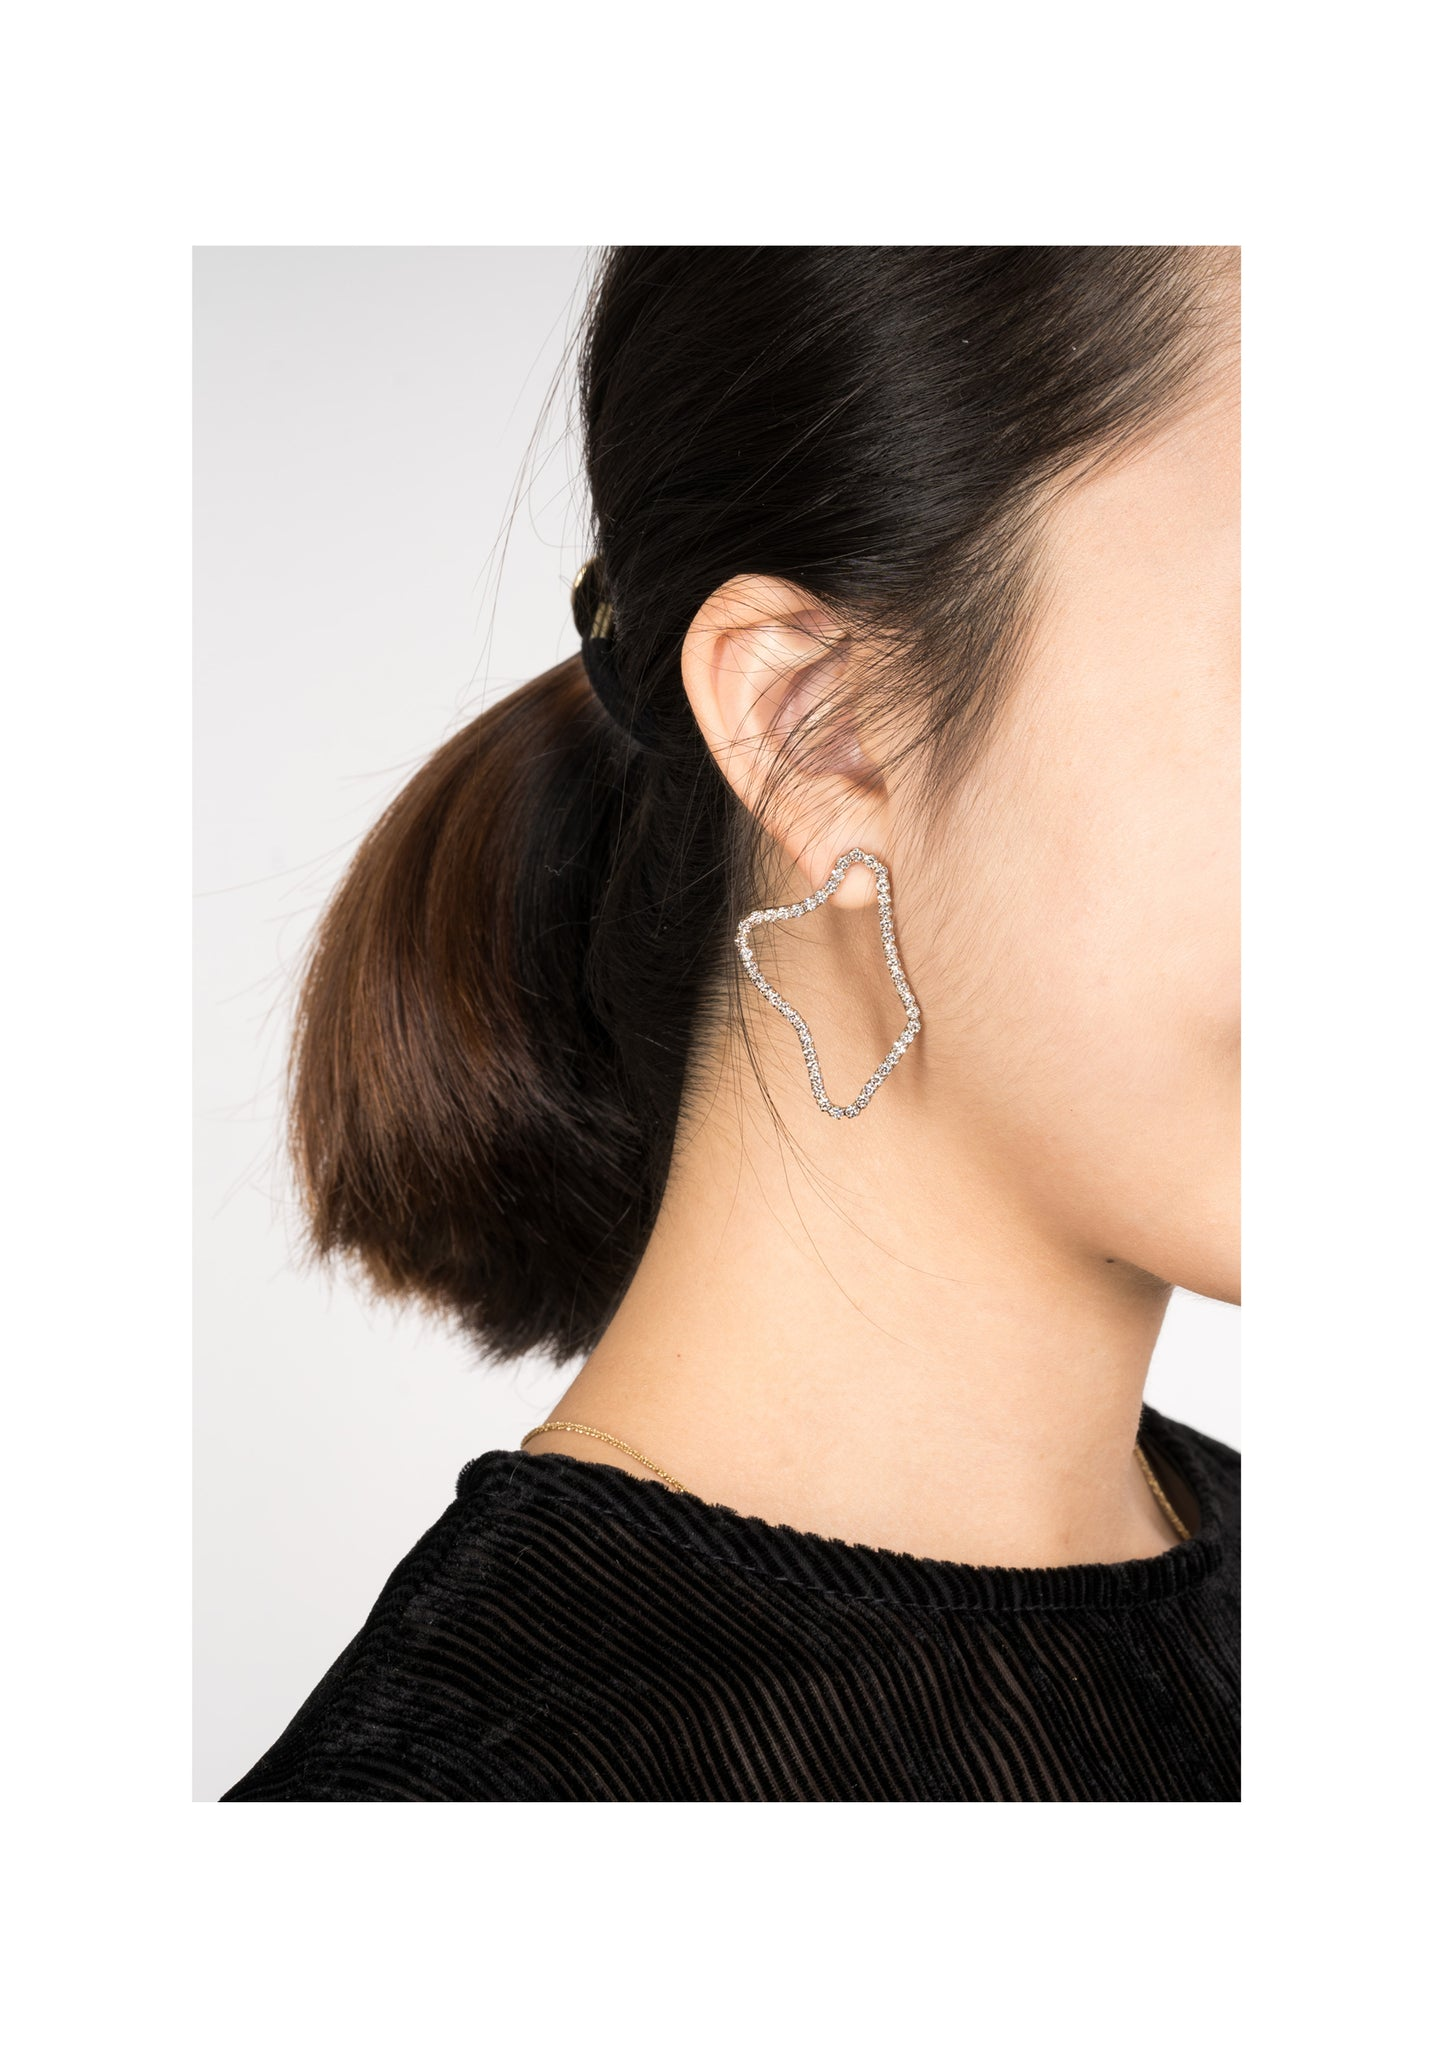 Organic Sparkle Loop Earrings - whoami